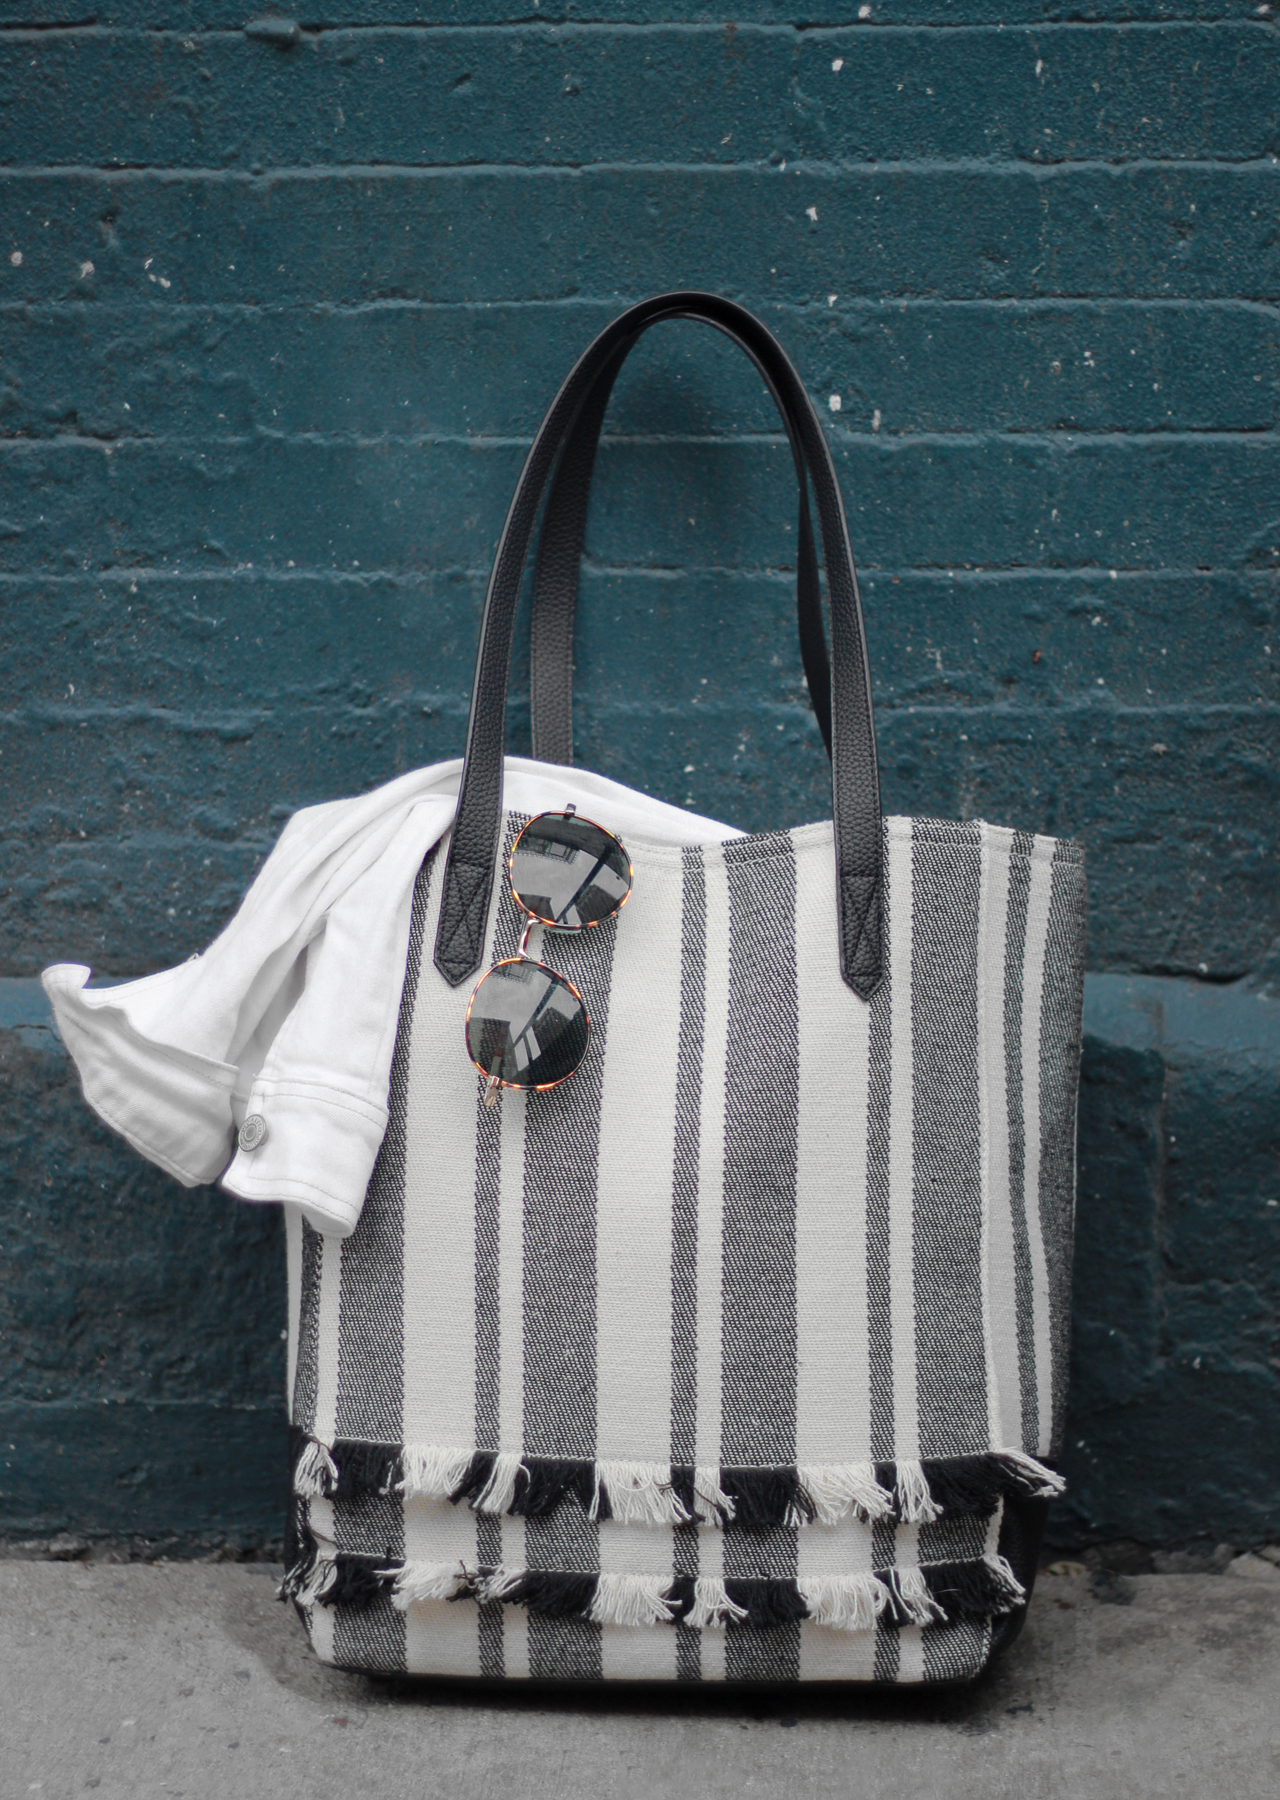 The Steele Maiden: Black and White for Summer with Old Navy - Fringe Tote and Palm Print Sneakers